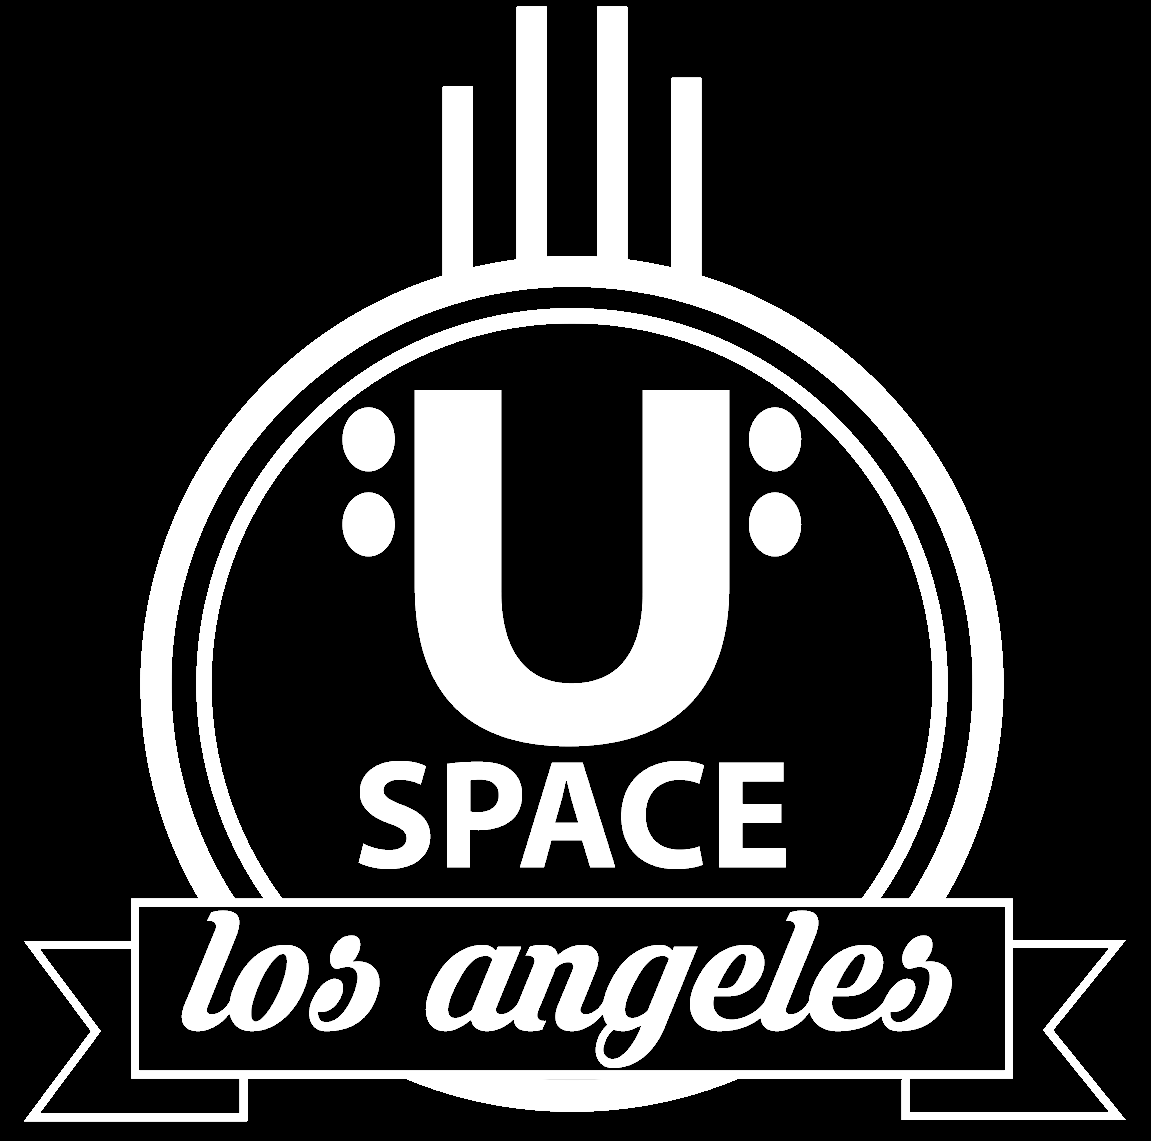 Featured In... - Ukulele Underground - The most comprehensive Blues Ukulele video course [+LEARN MORE+]NBC L.A. - A Community in Ukulele [+LEARN MORE+]LAist - Awesome Events in Southern California This Week [+LEARN MORE+]Ukulele Magazine - 27 Ukulele-Heavy @Instagram Accounts We Love [+LEARN MORE+]